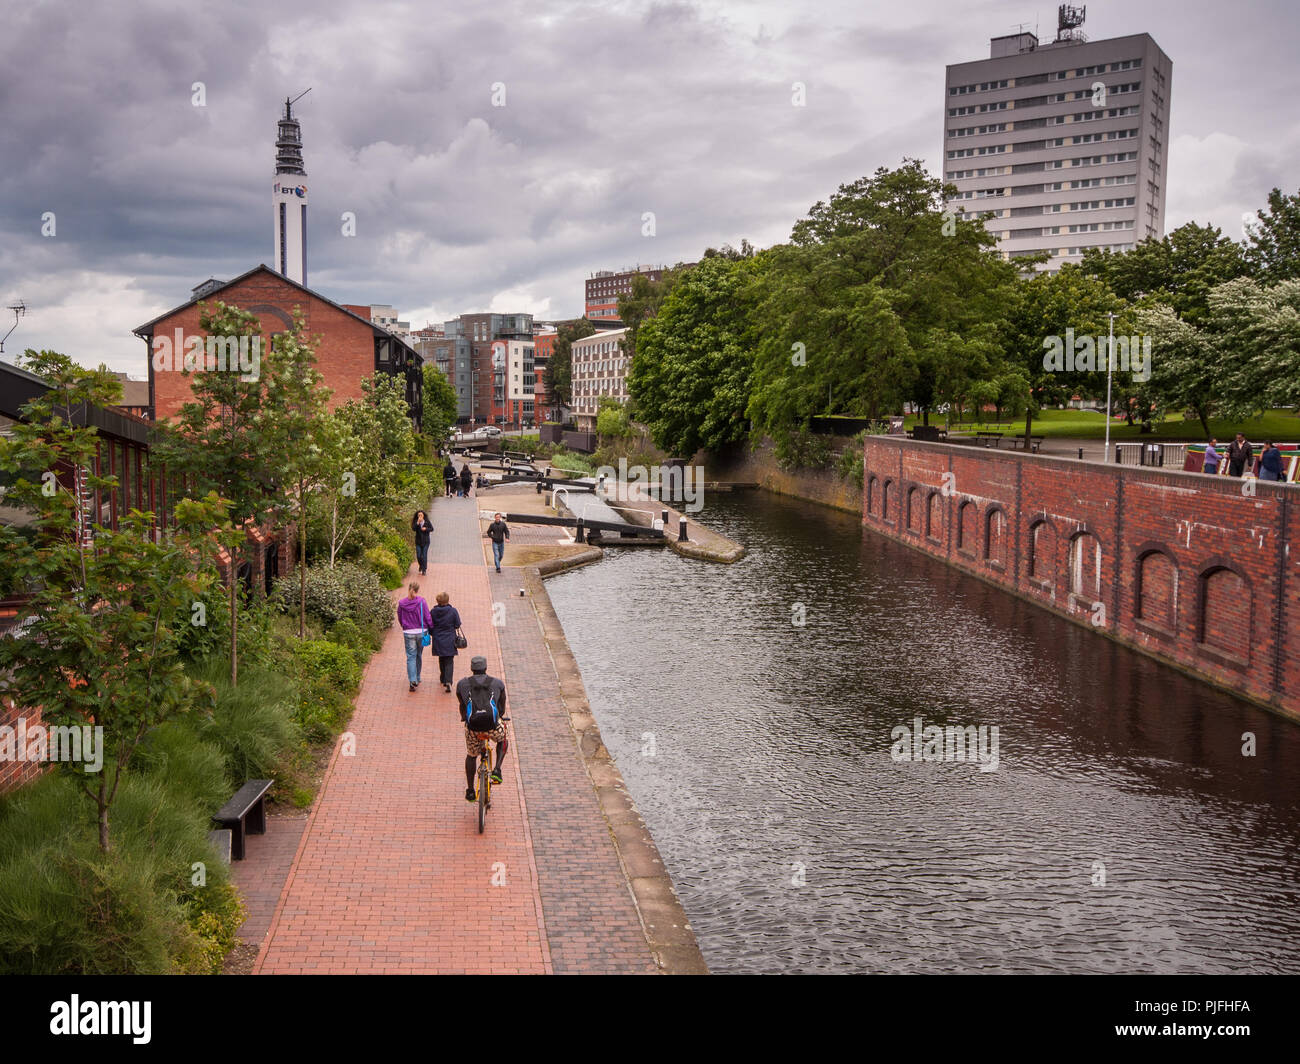 Birmingham, England, UK - June 23, 2012: Cyclists and pedestrians travel on the towpath alongside the Grand Union Canal in Birmingham city centre, wit - Stock Image